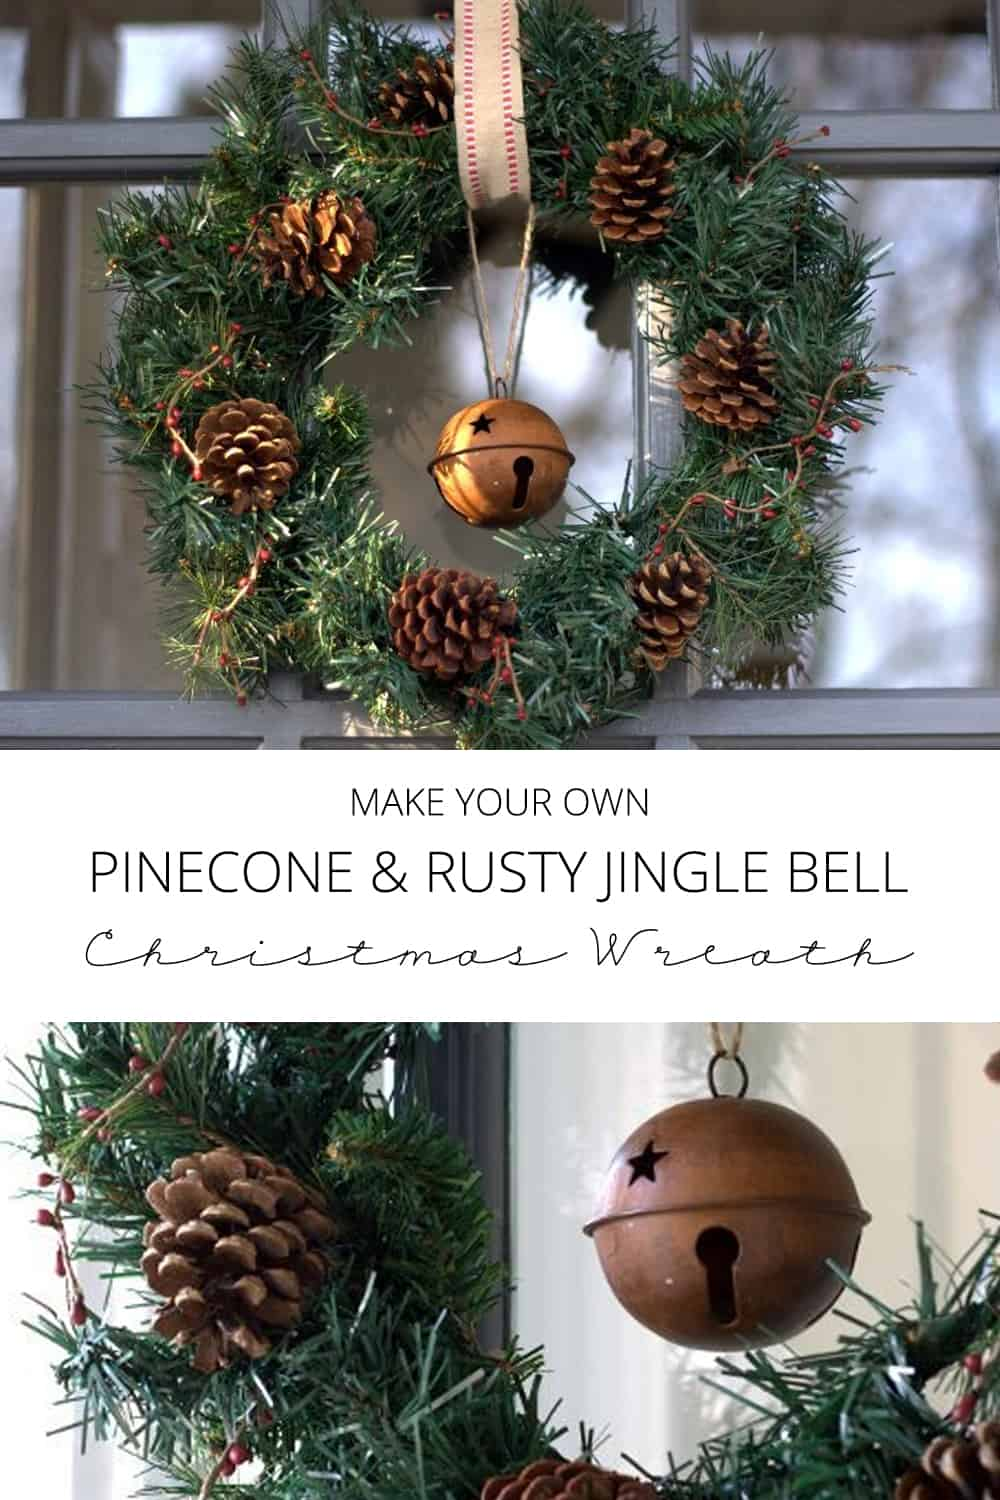 make your own pinecone and rusty jingle bell Christmas wreath